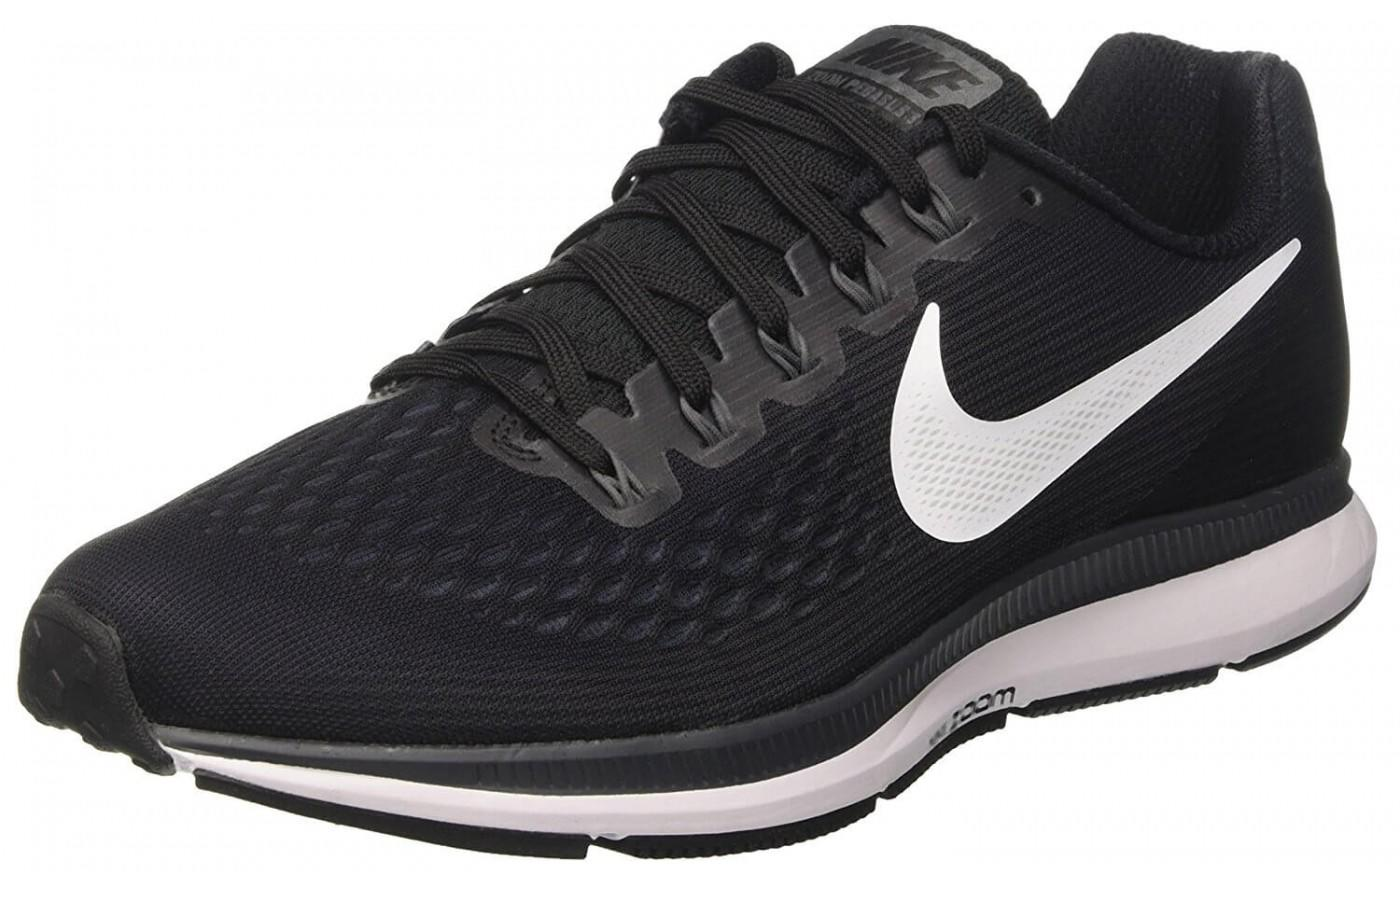 0b6a9954027b7 the upper of the Nike Air Zoom Pegasus 34 is made of breathable Flymesh ...